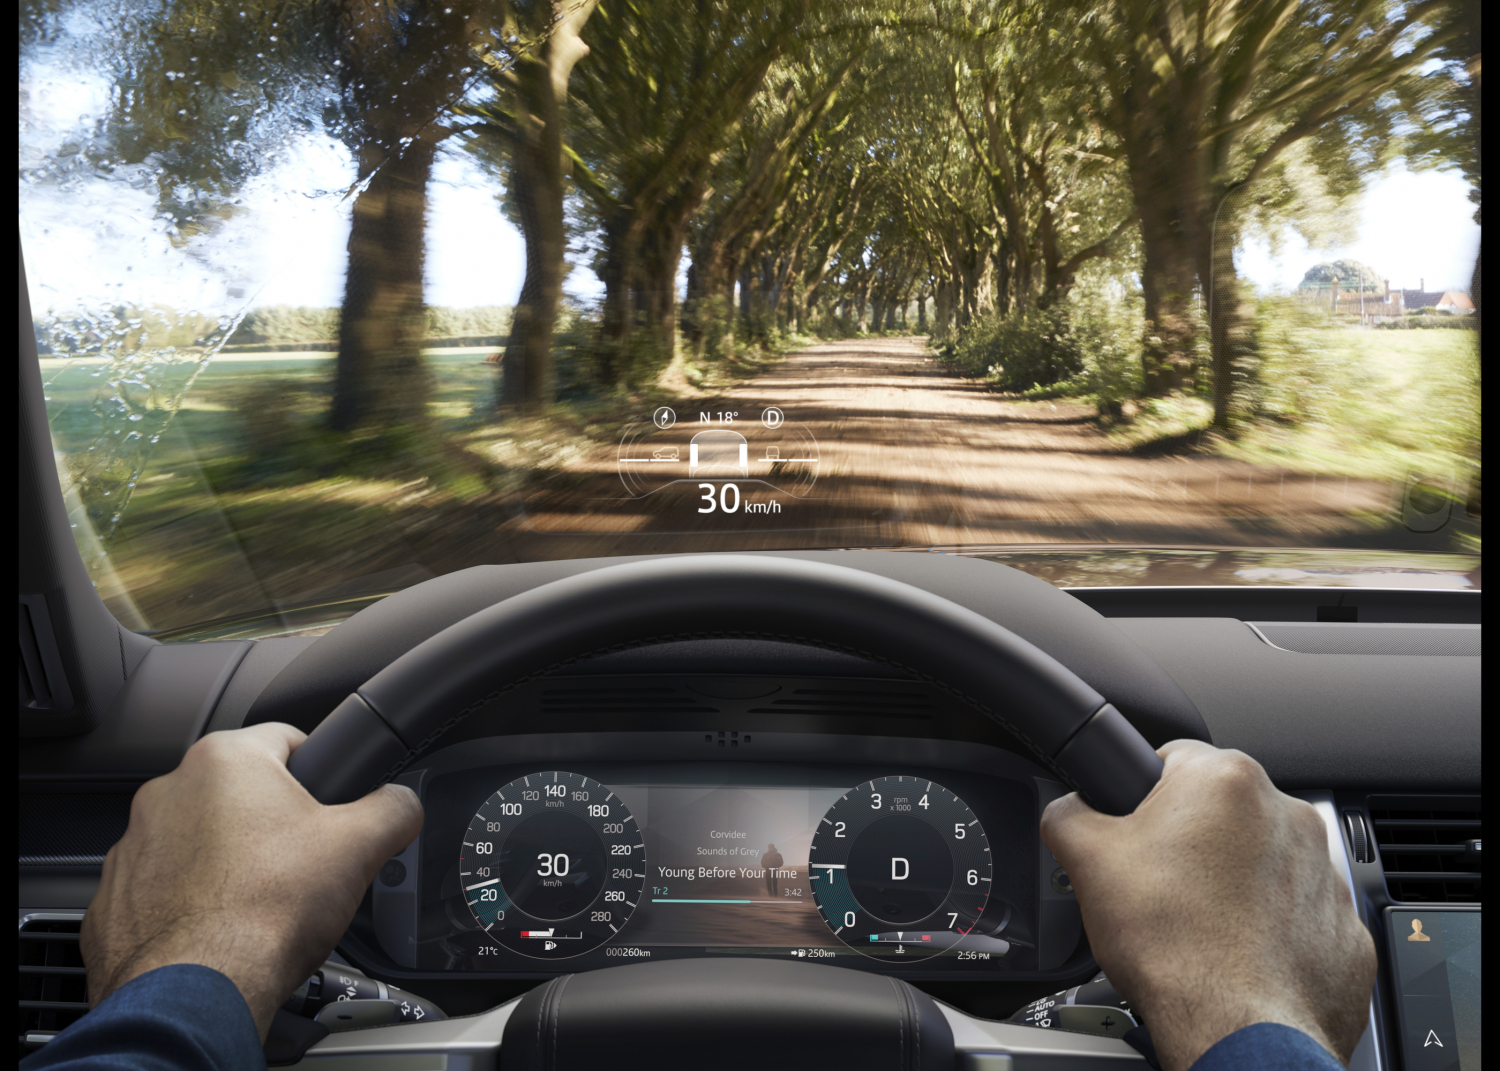 New Land Rover Discovery R-Dynamic - Interior